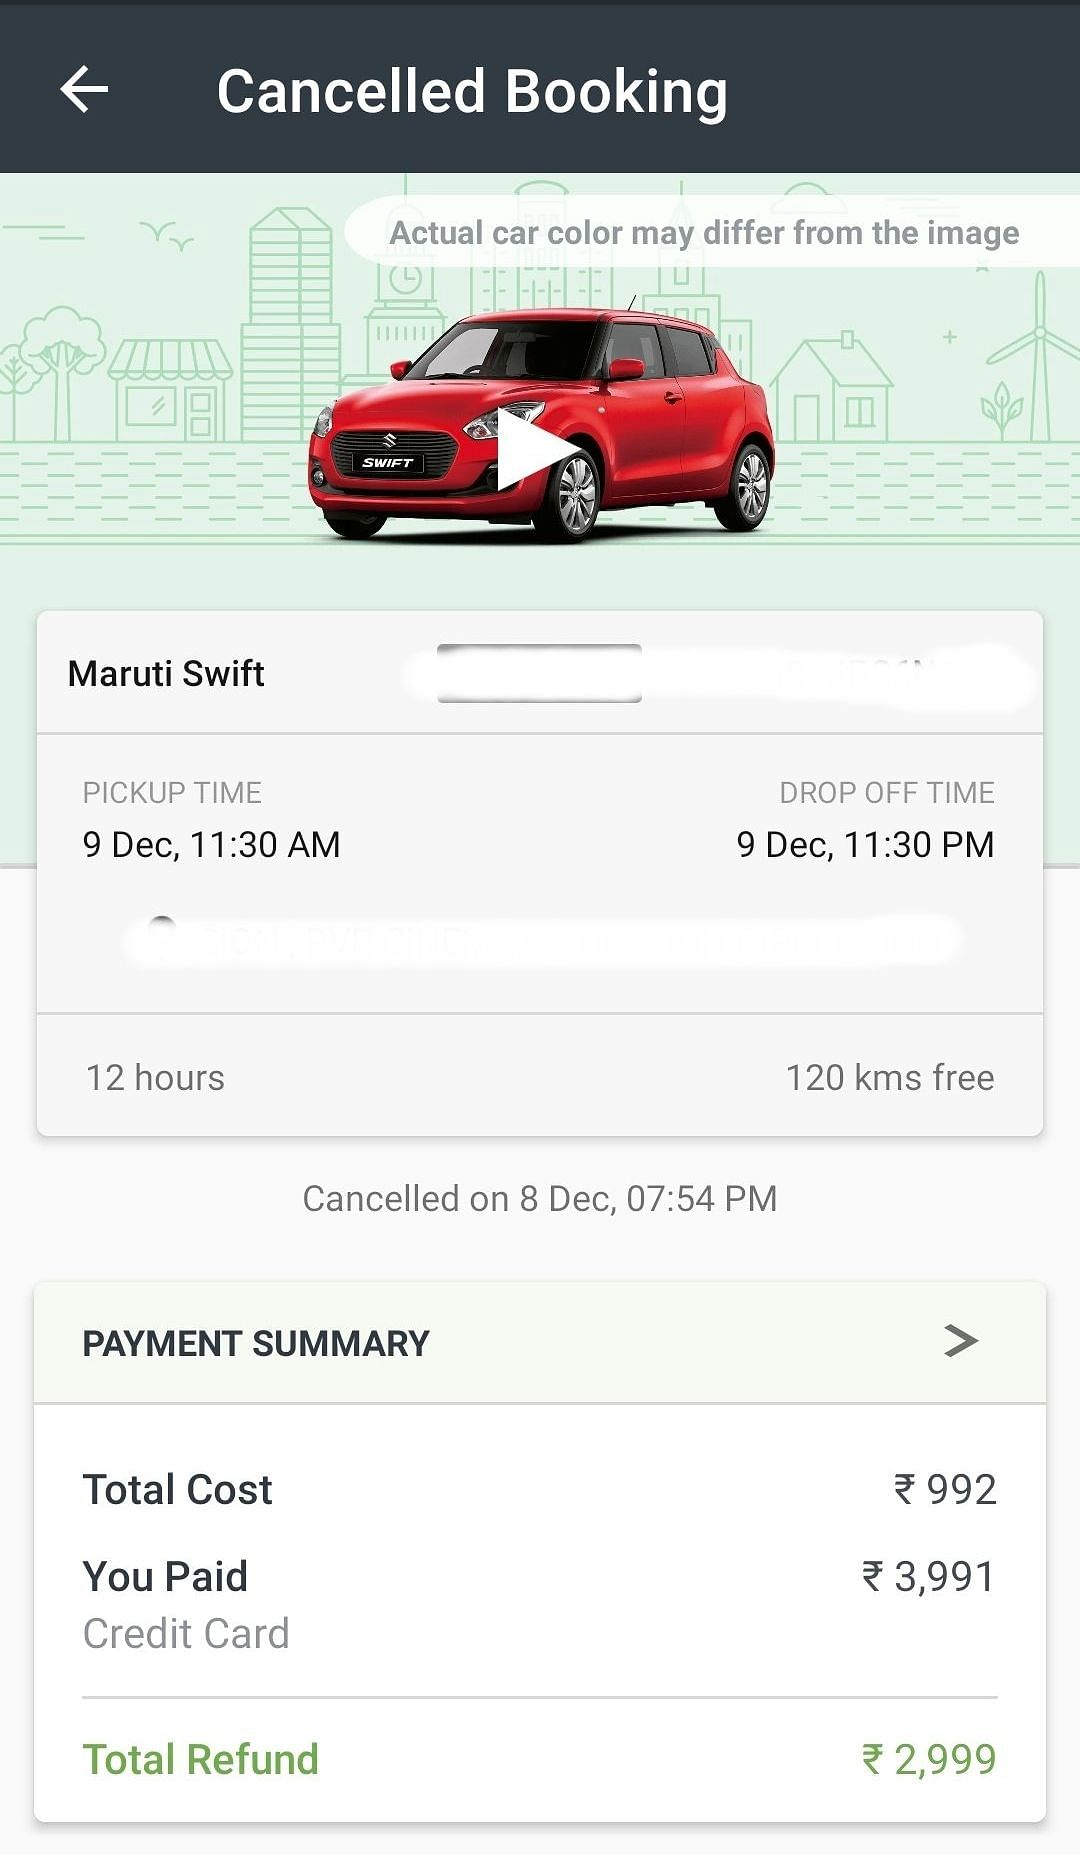 Zoomcar Booking made for 9 December.